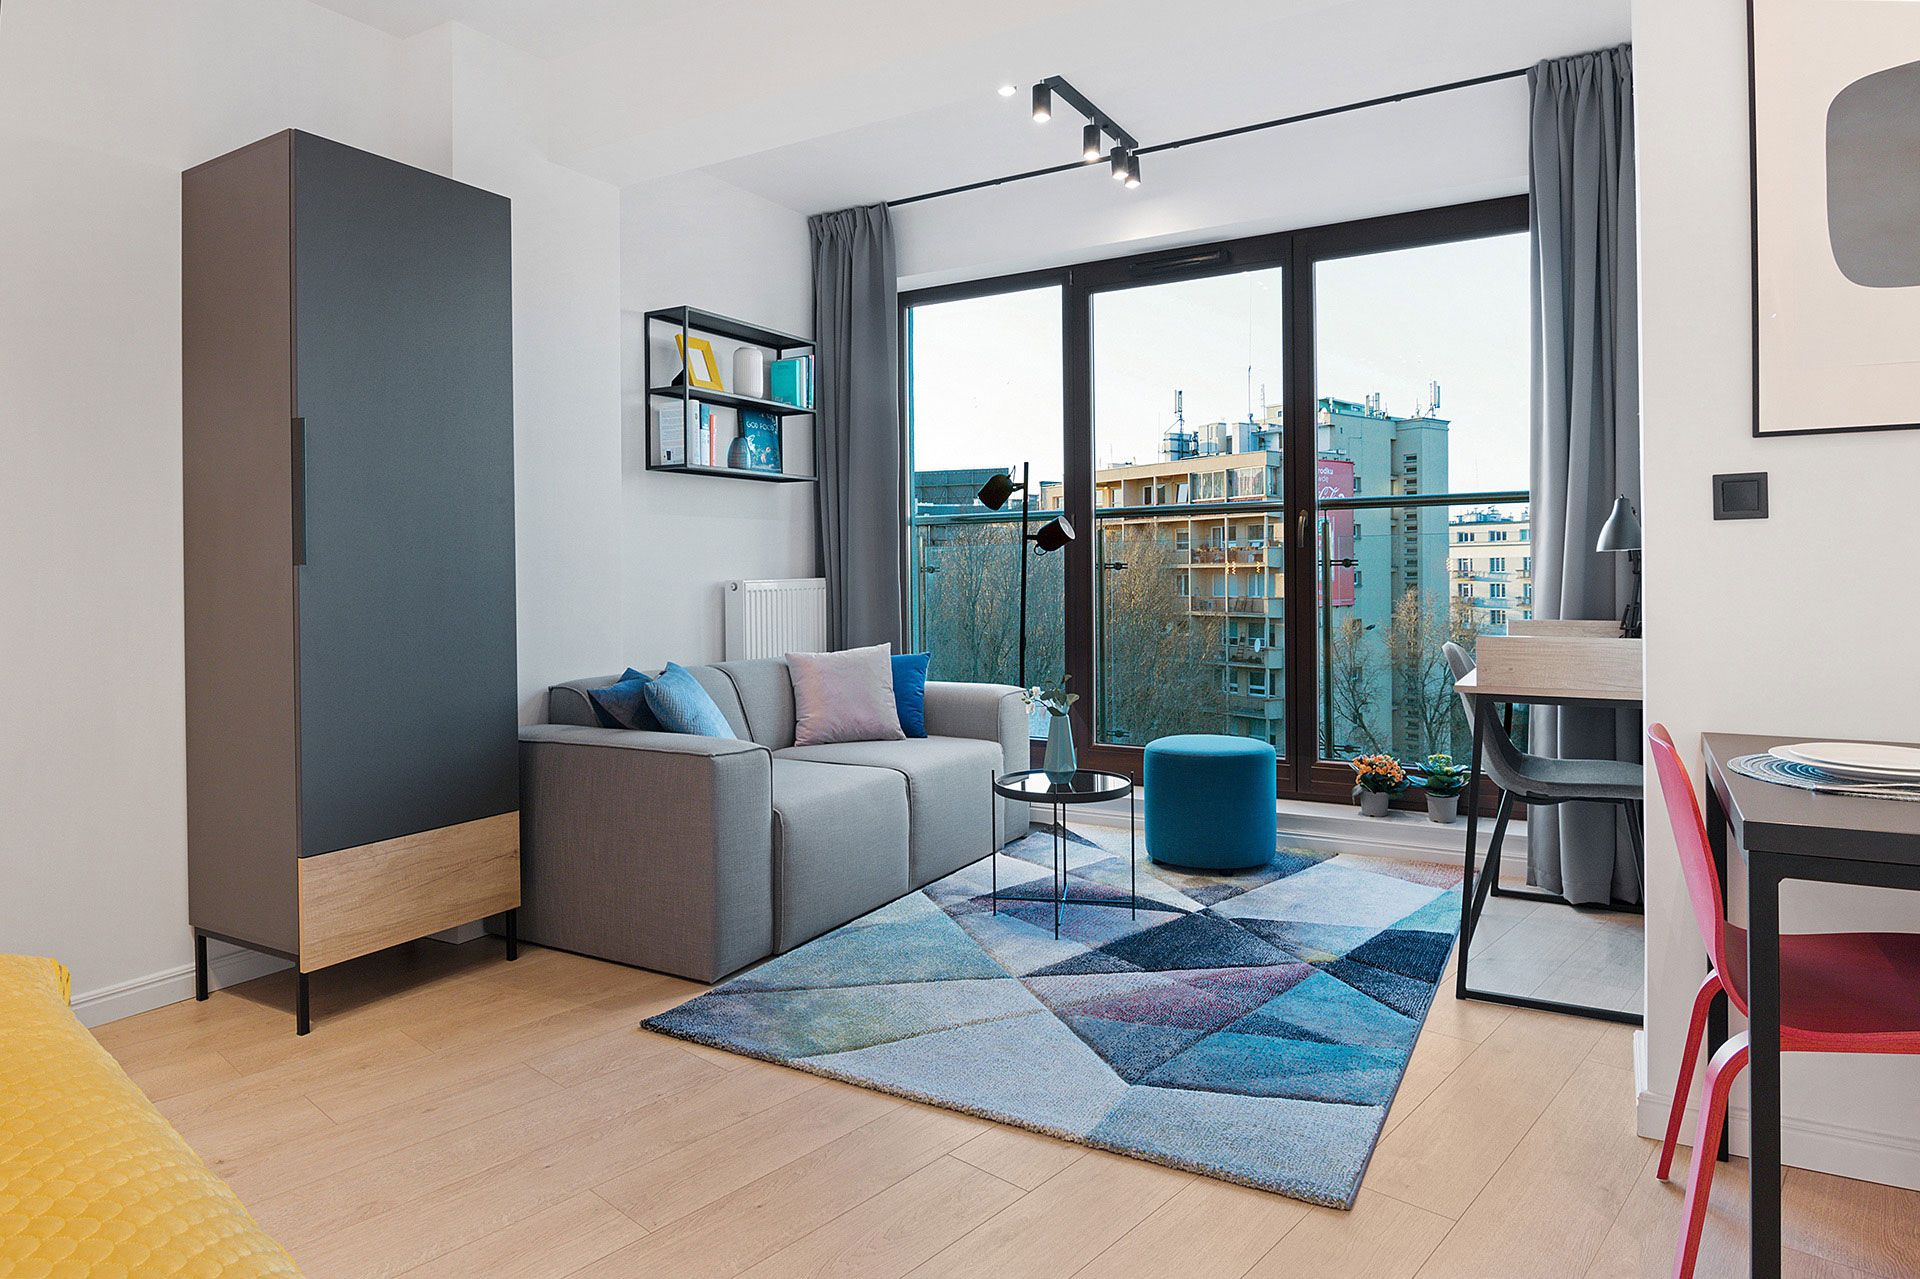 Studio - Medium apartment to rent in Warsaw UPR-A-034-1